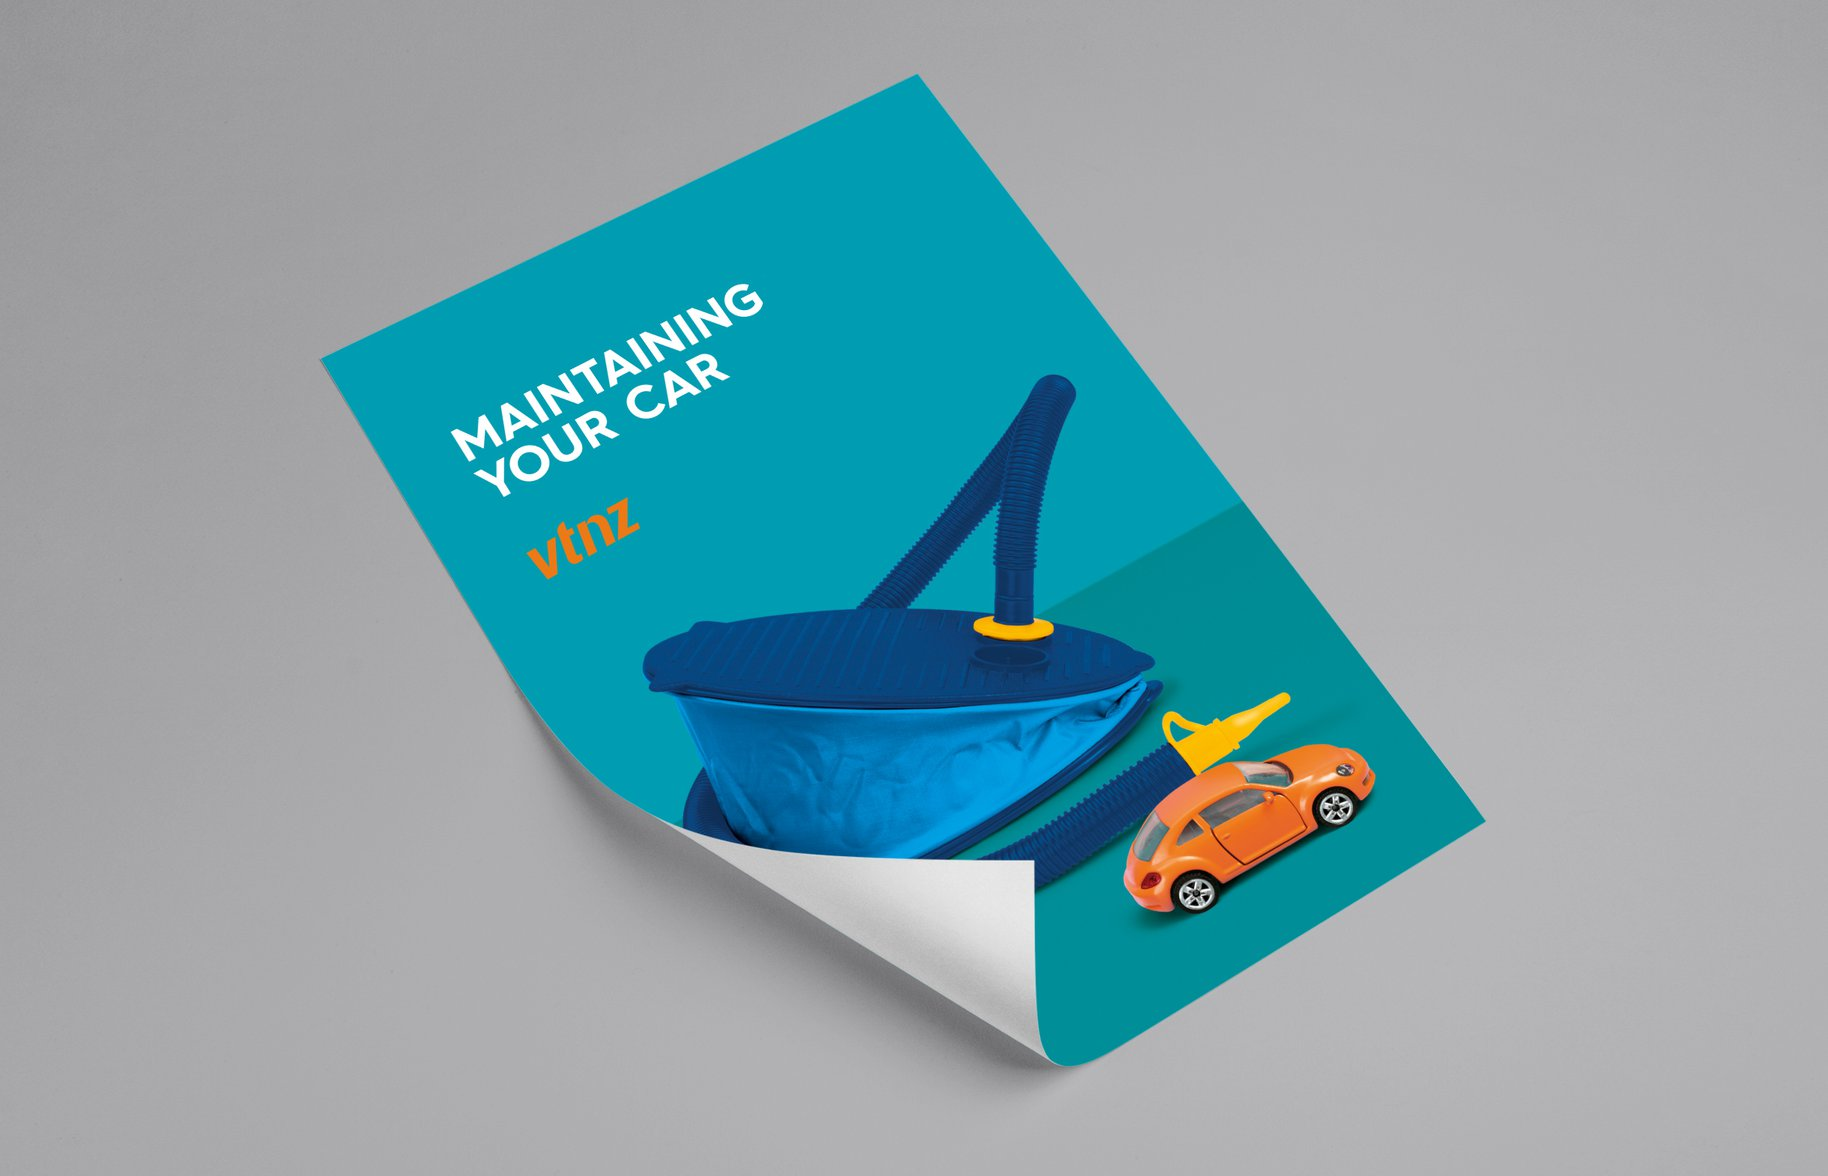 VTNZ 'Maintaining your car' Poster